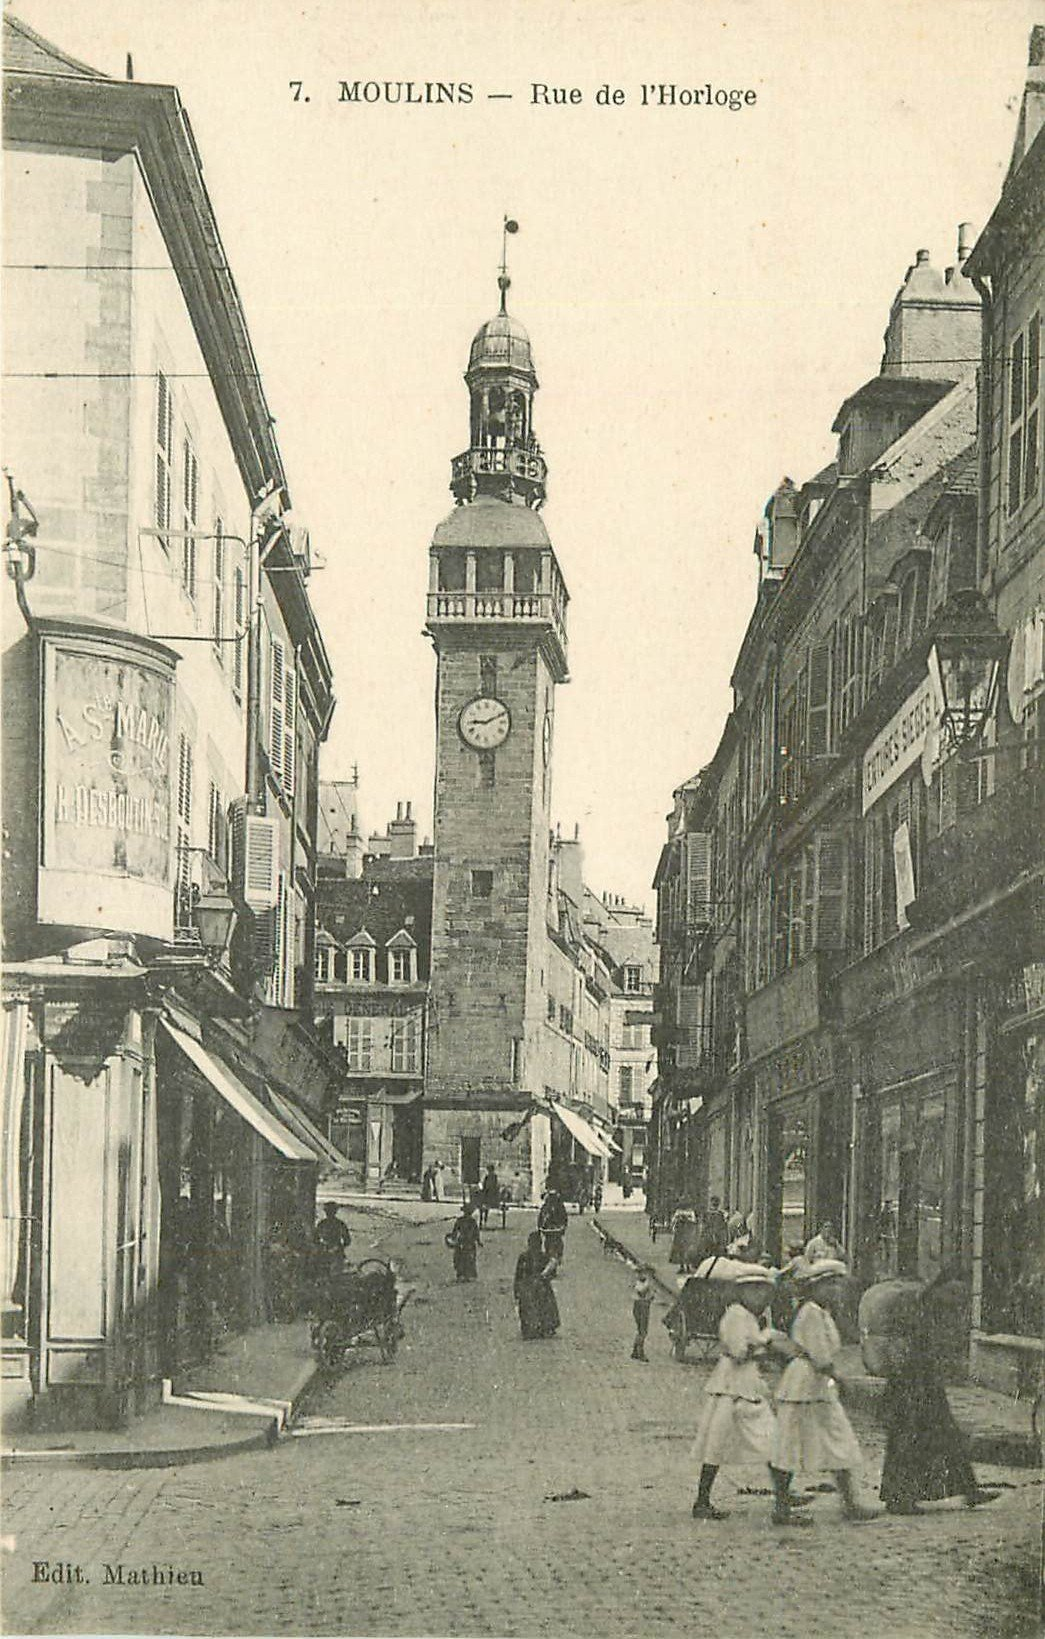 03 MOULINS. Animation rue de l'Horloge